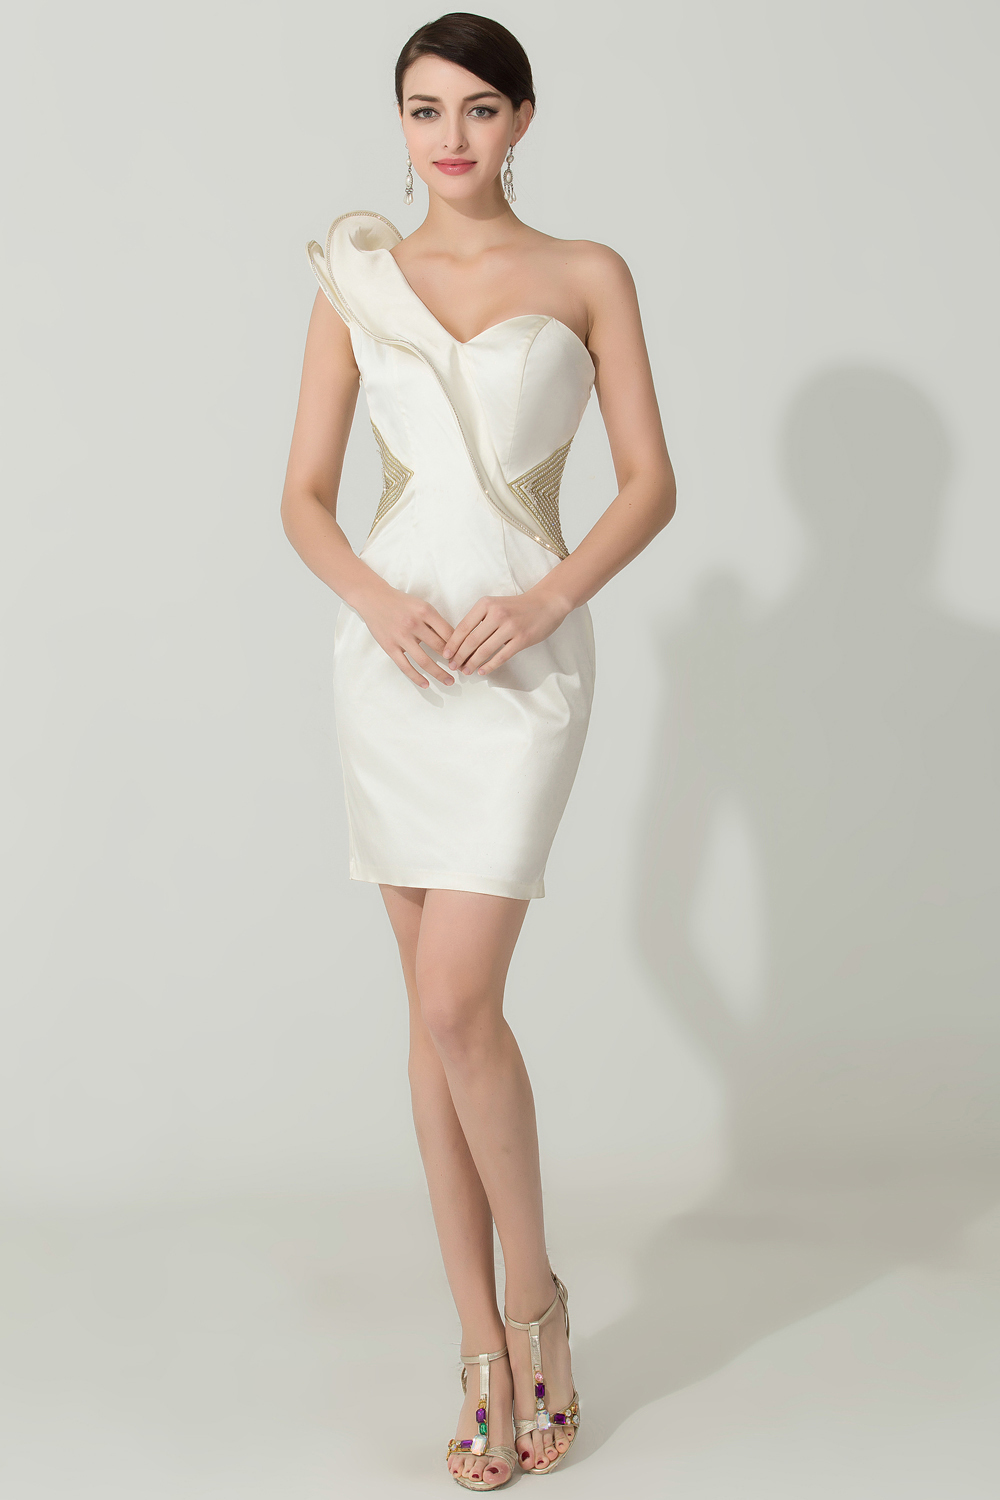 Sheath/Column One-Shoulder Mini-Length Satin Cocktail Dress with Ruffles